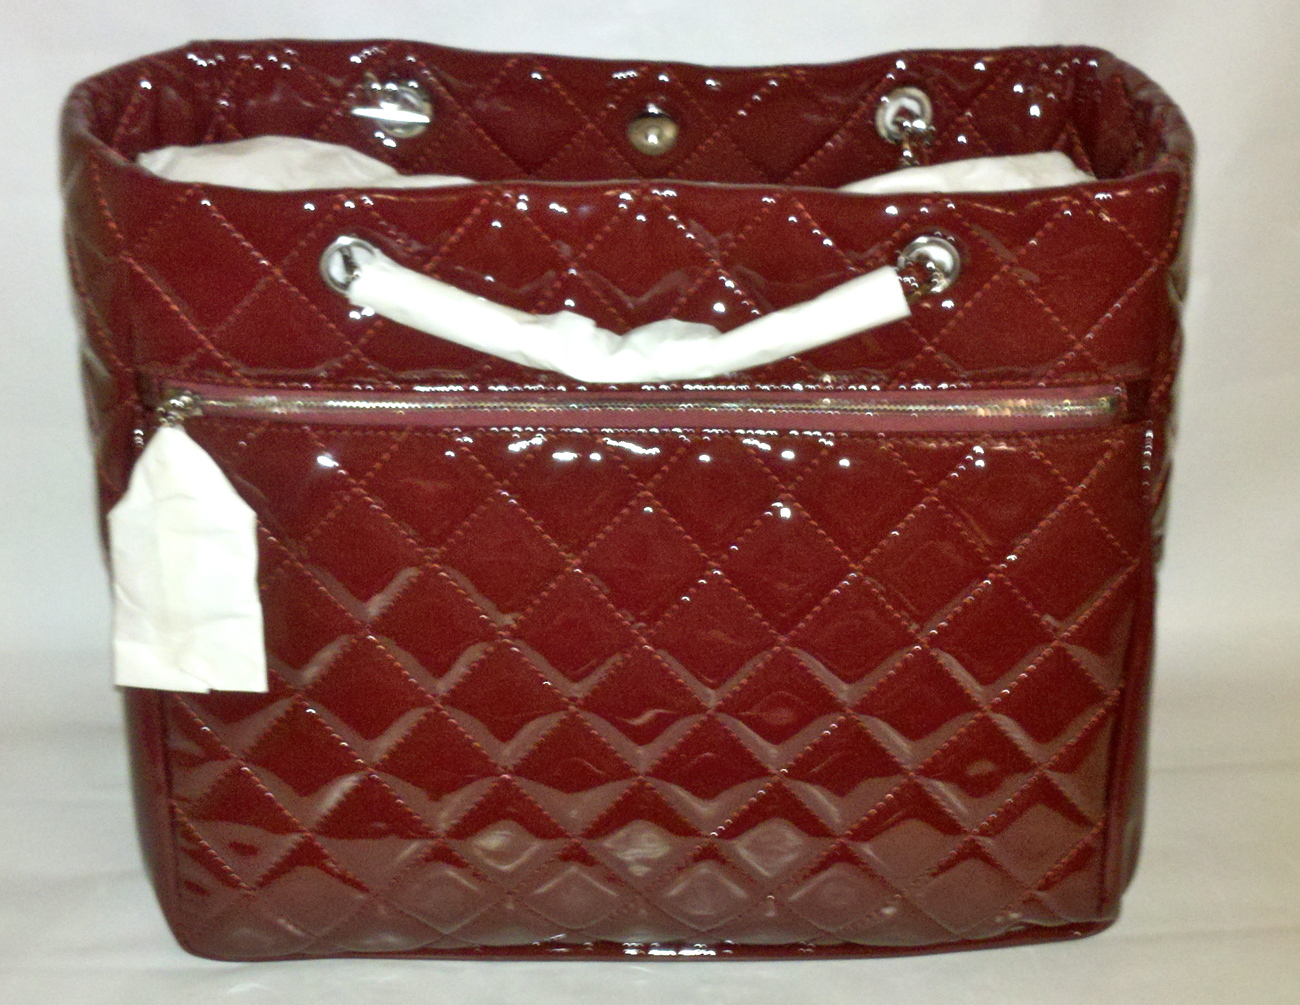 NWT AUTHENTIC Chanel Chic Glitter Patent Leather Tote Bag Burgundy Bordeaux Red